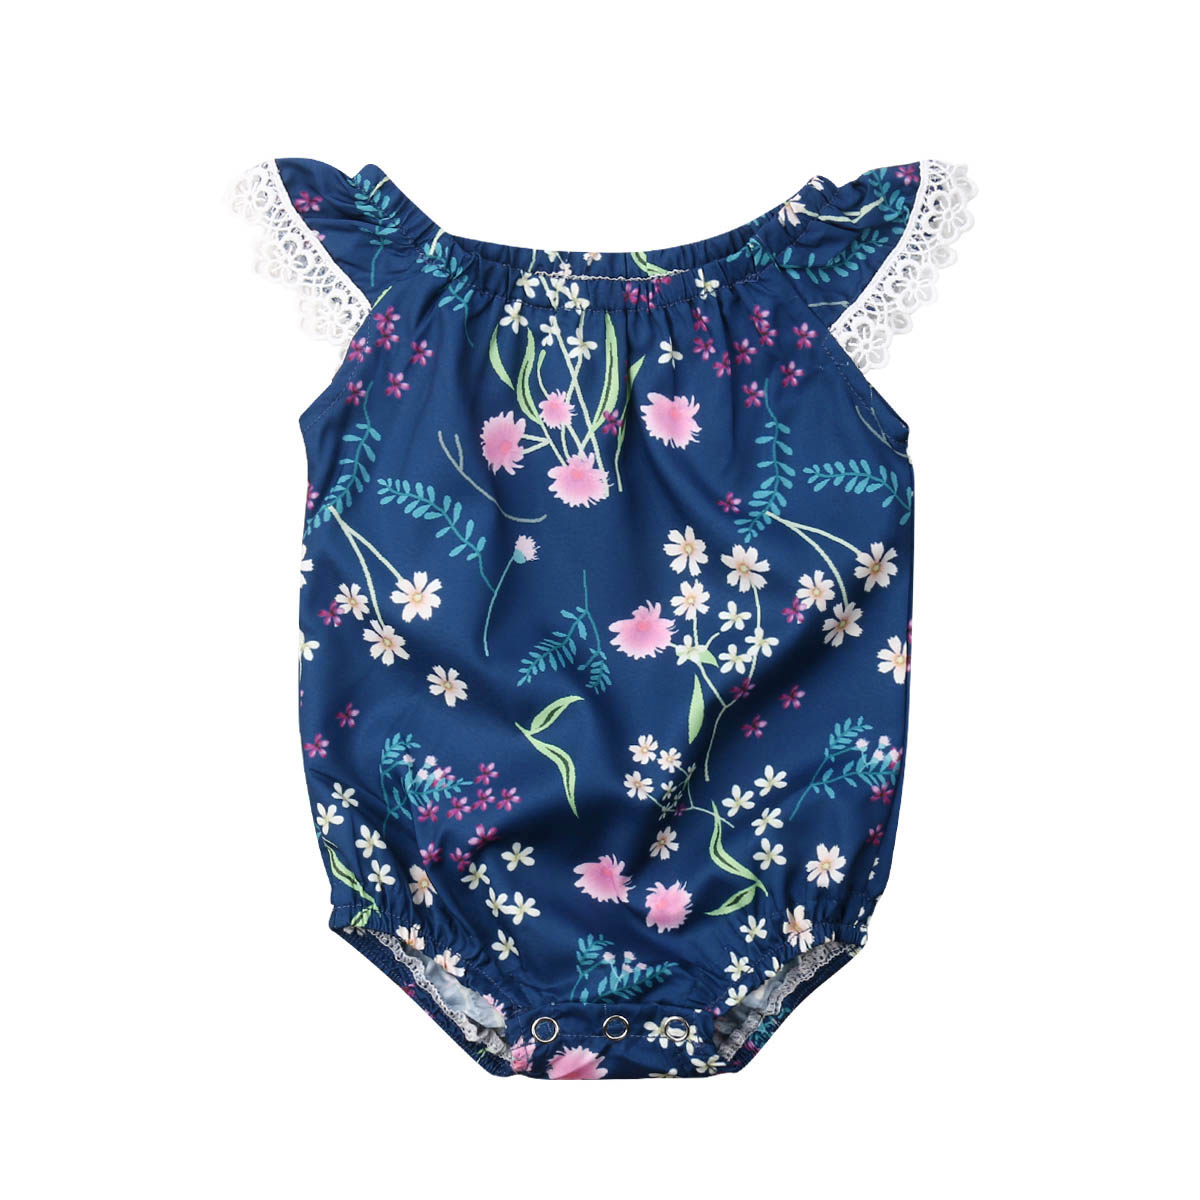 0-18M Cute Newborn Baby Girl Fly Sleeve Floral   Romper   Jumpsuit Playsuit Outfits Summer Sunsuit Clothes